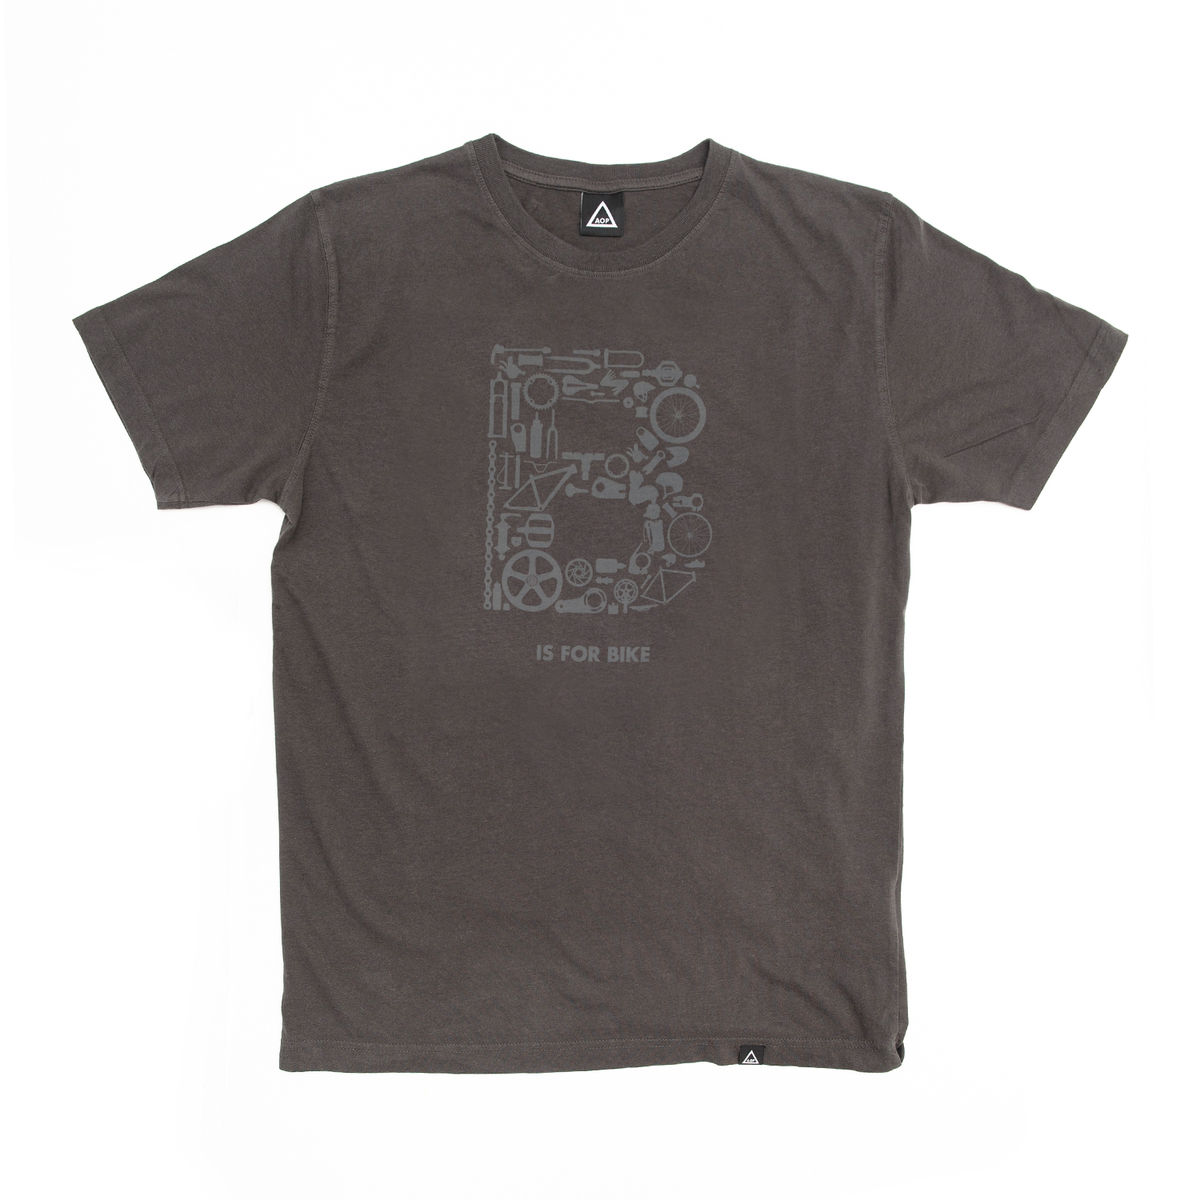 AOP B is for Bike 100% Organic T-shirt - product image